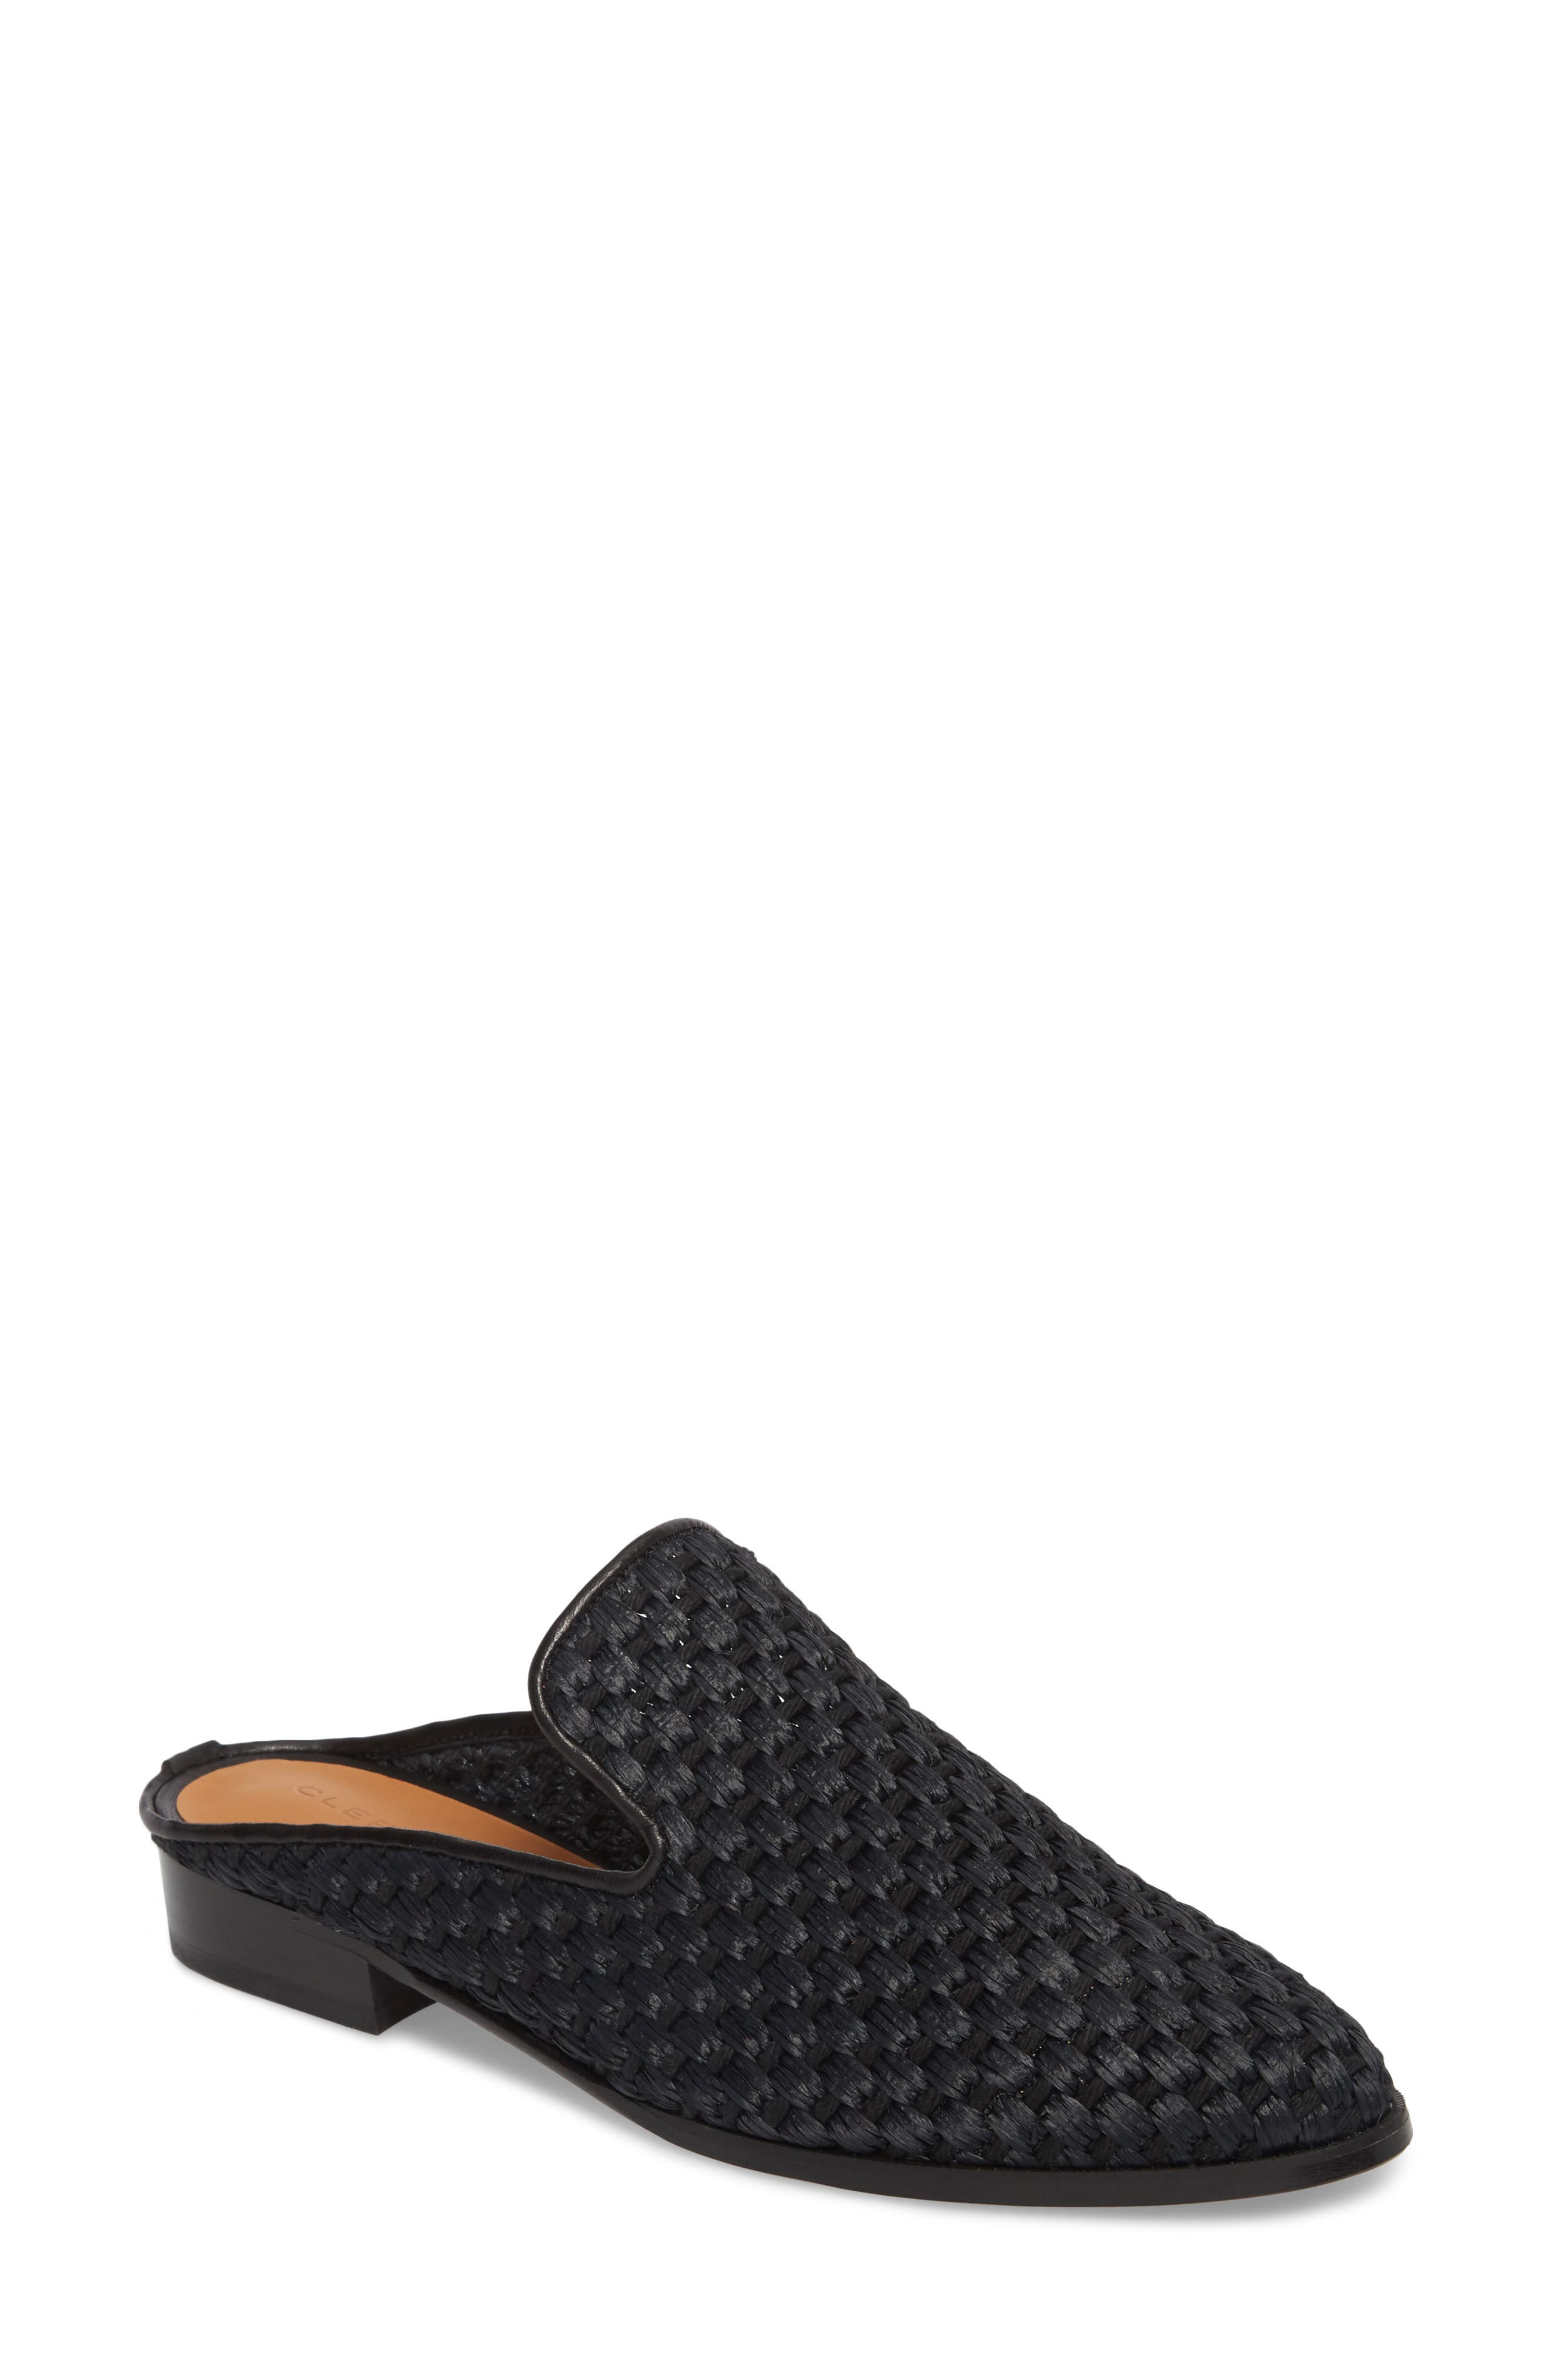 Aliceop Woven Loafer Mule,                             Main thumbnail 1, color,                             011